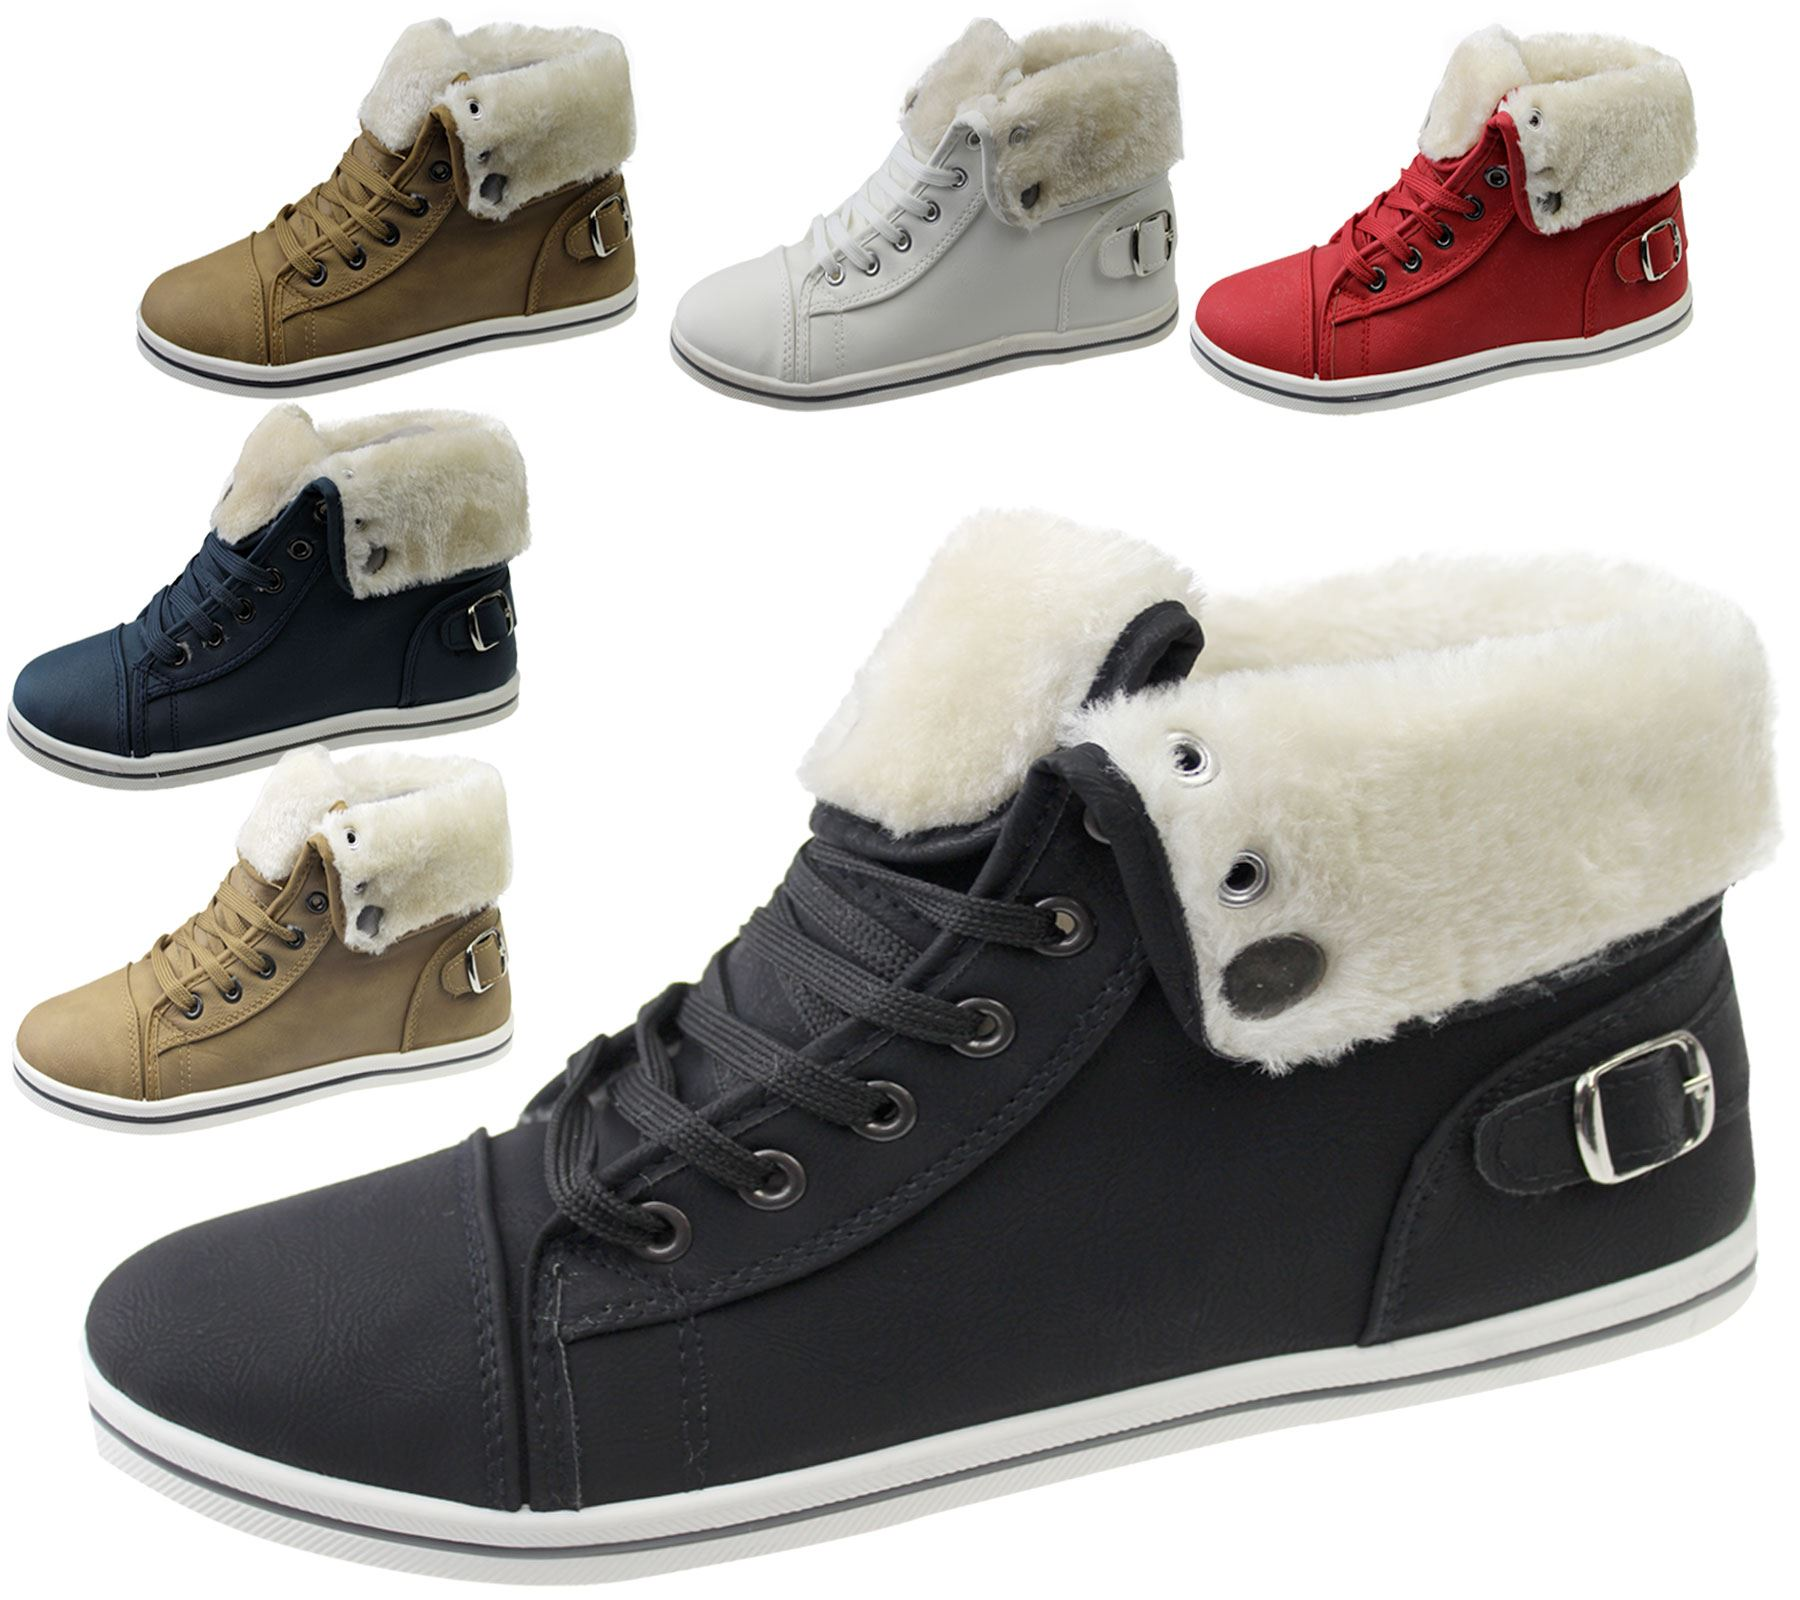 c1ebb1168cf Details about Womens Warm Lined Boots High Top Ankle Ladies Trainer Sneaker  Plimsole Shoes